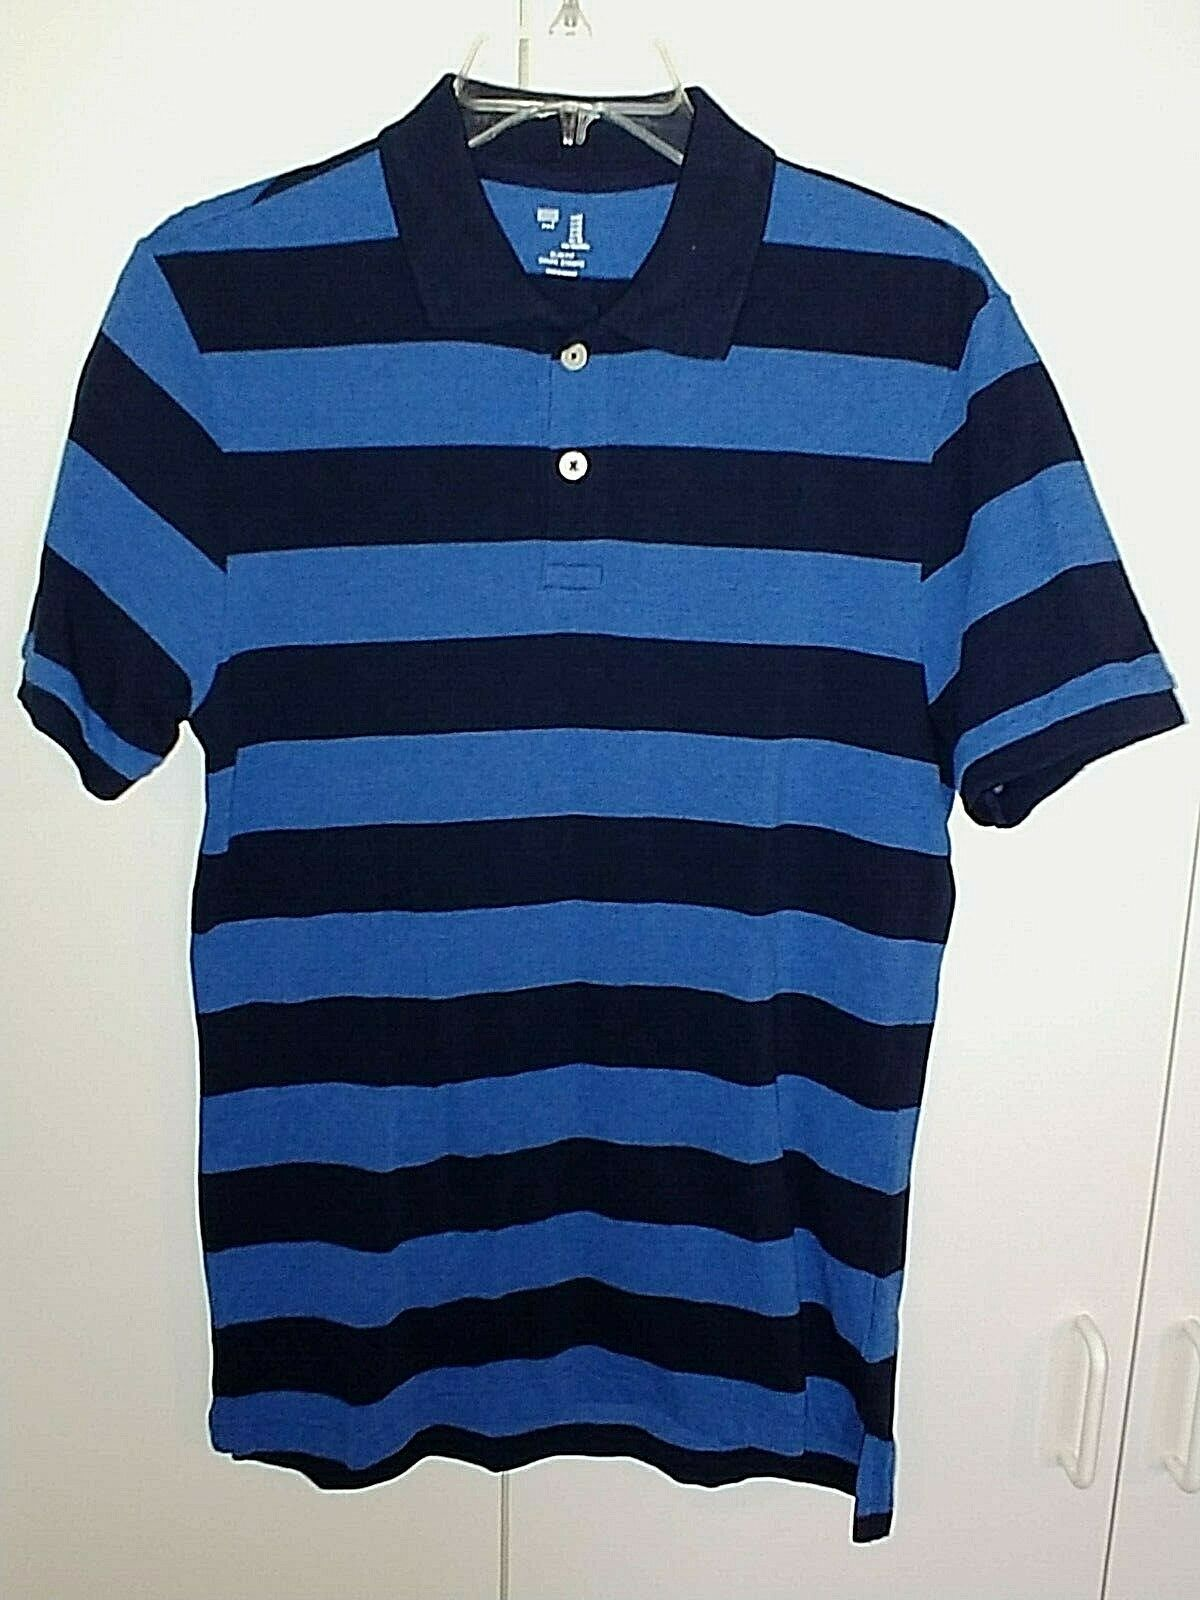 GAP MENS SS BLUE STRIPED 100% COTTON SLIM FIT POLO SHIRT-M-NWD-NECK NAME BLOCKED